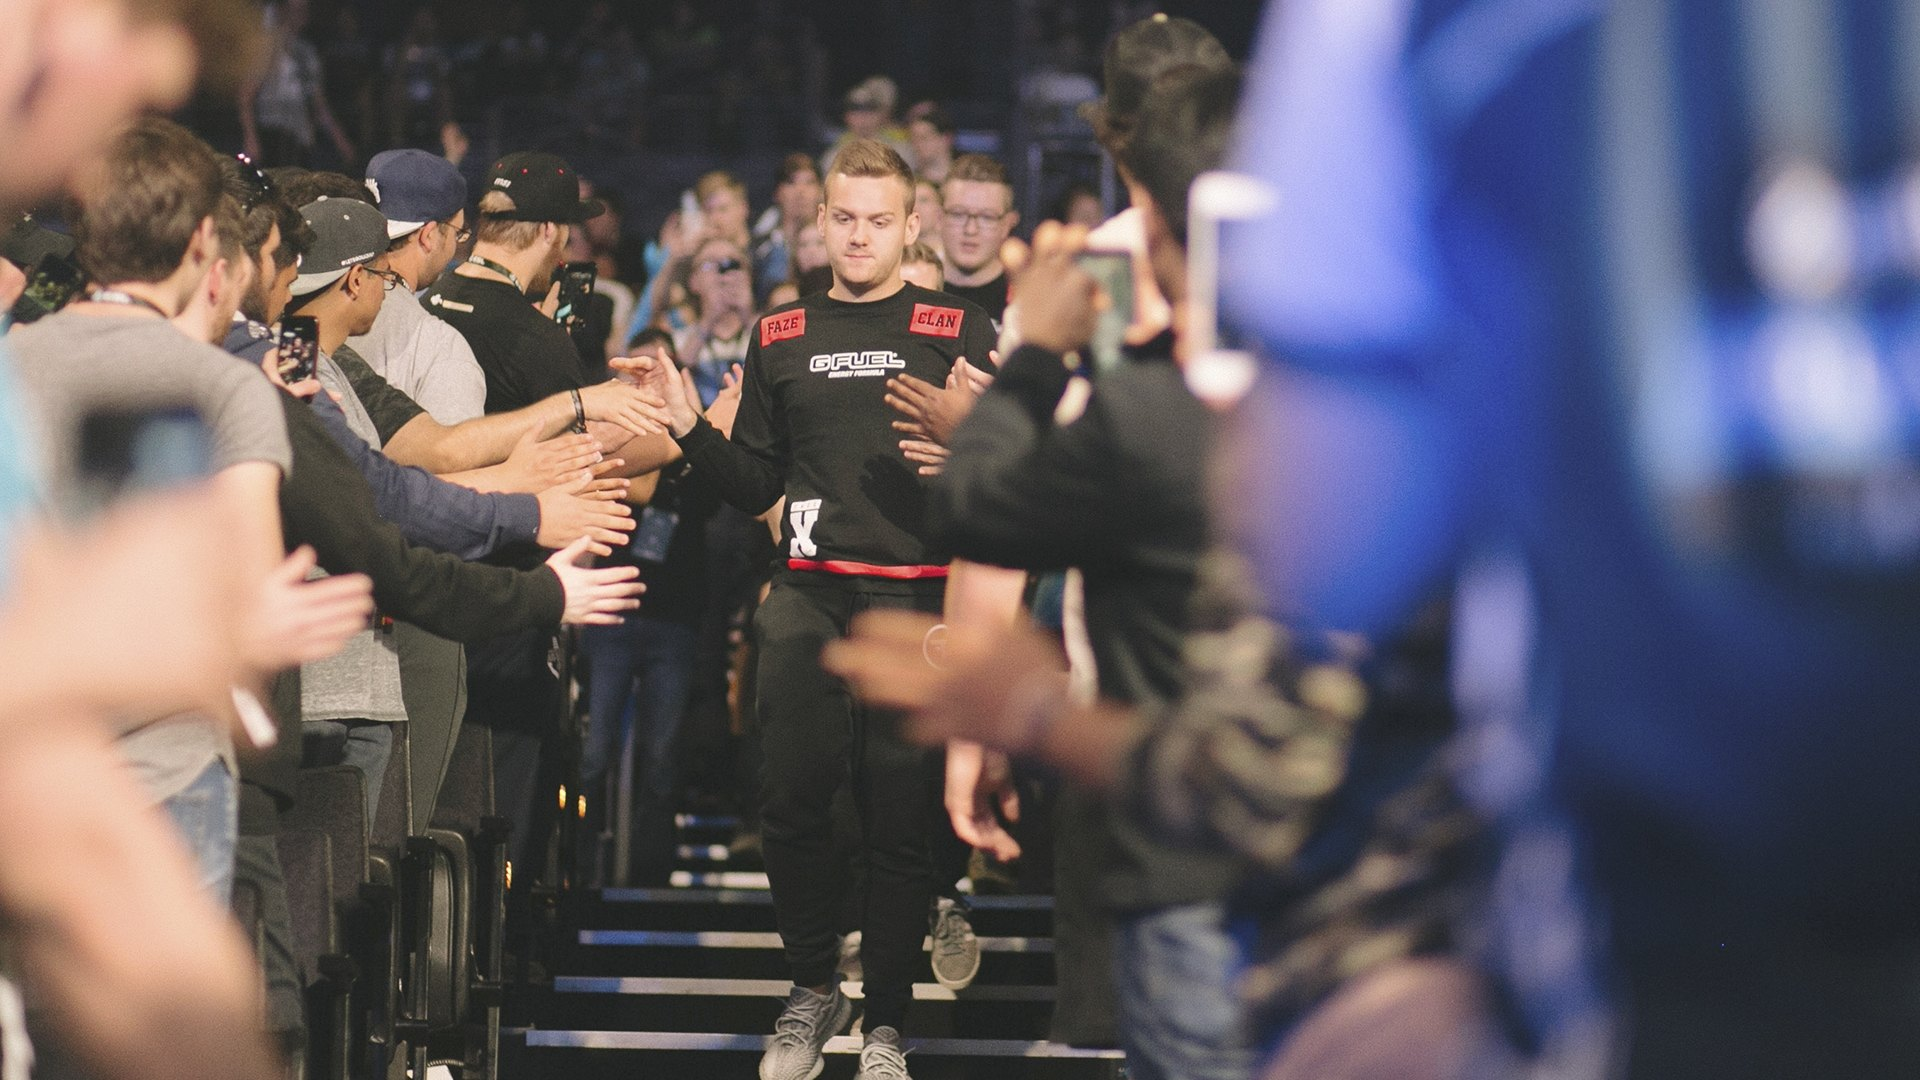 FaZe gamer walking through the competition floor